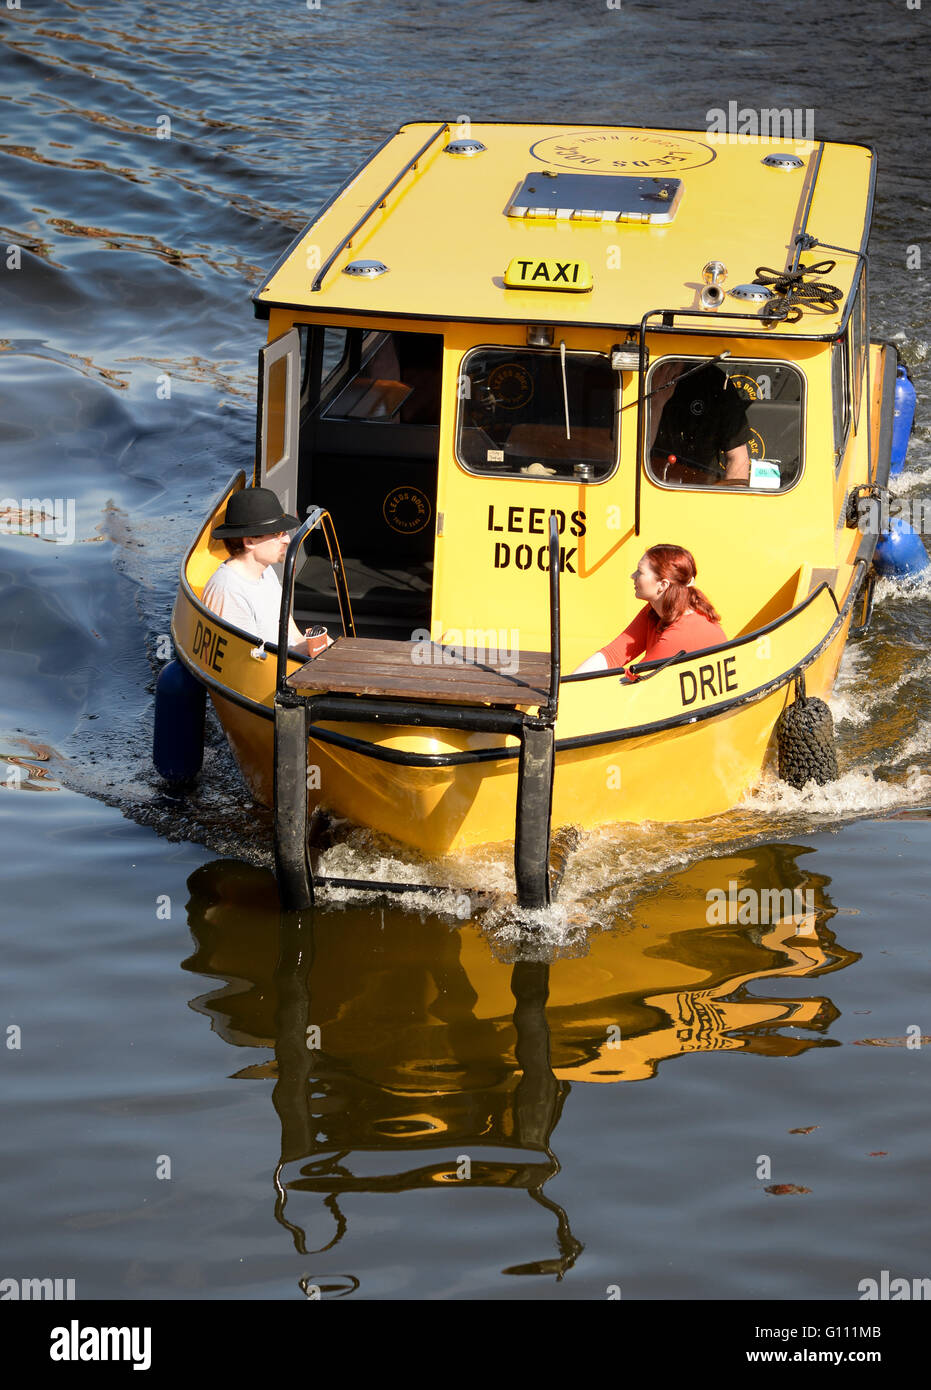 Free river taxi in Leeds - Stock Image